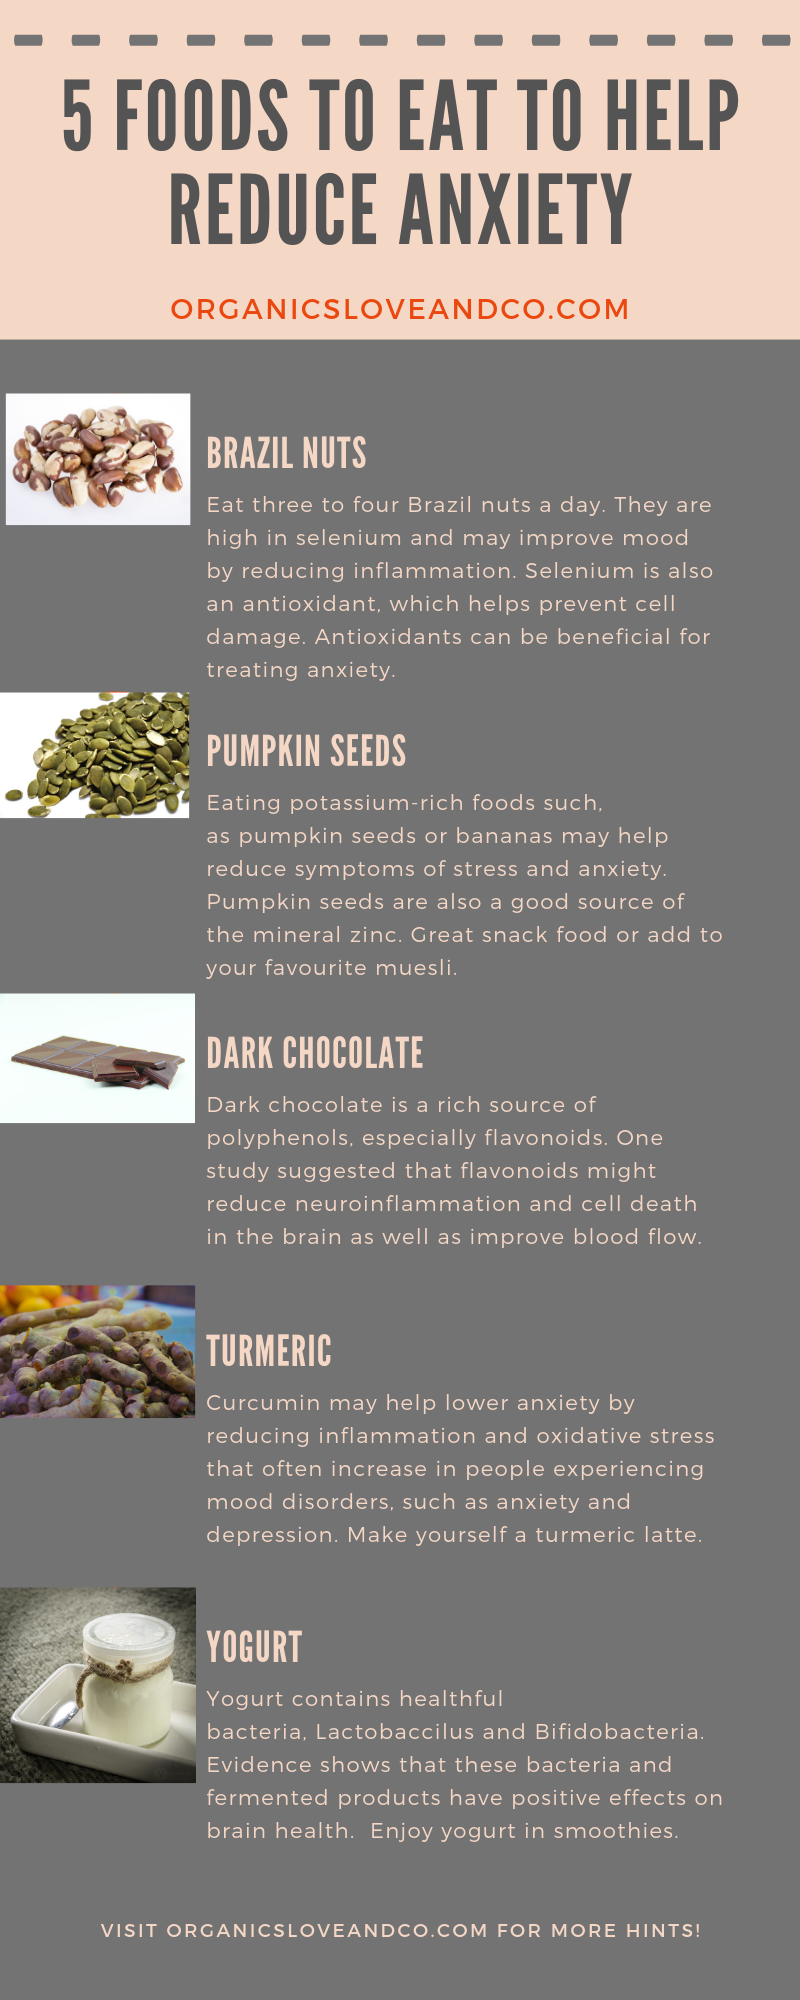 5 foods to eat to help reduce anxiety-2.png